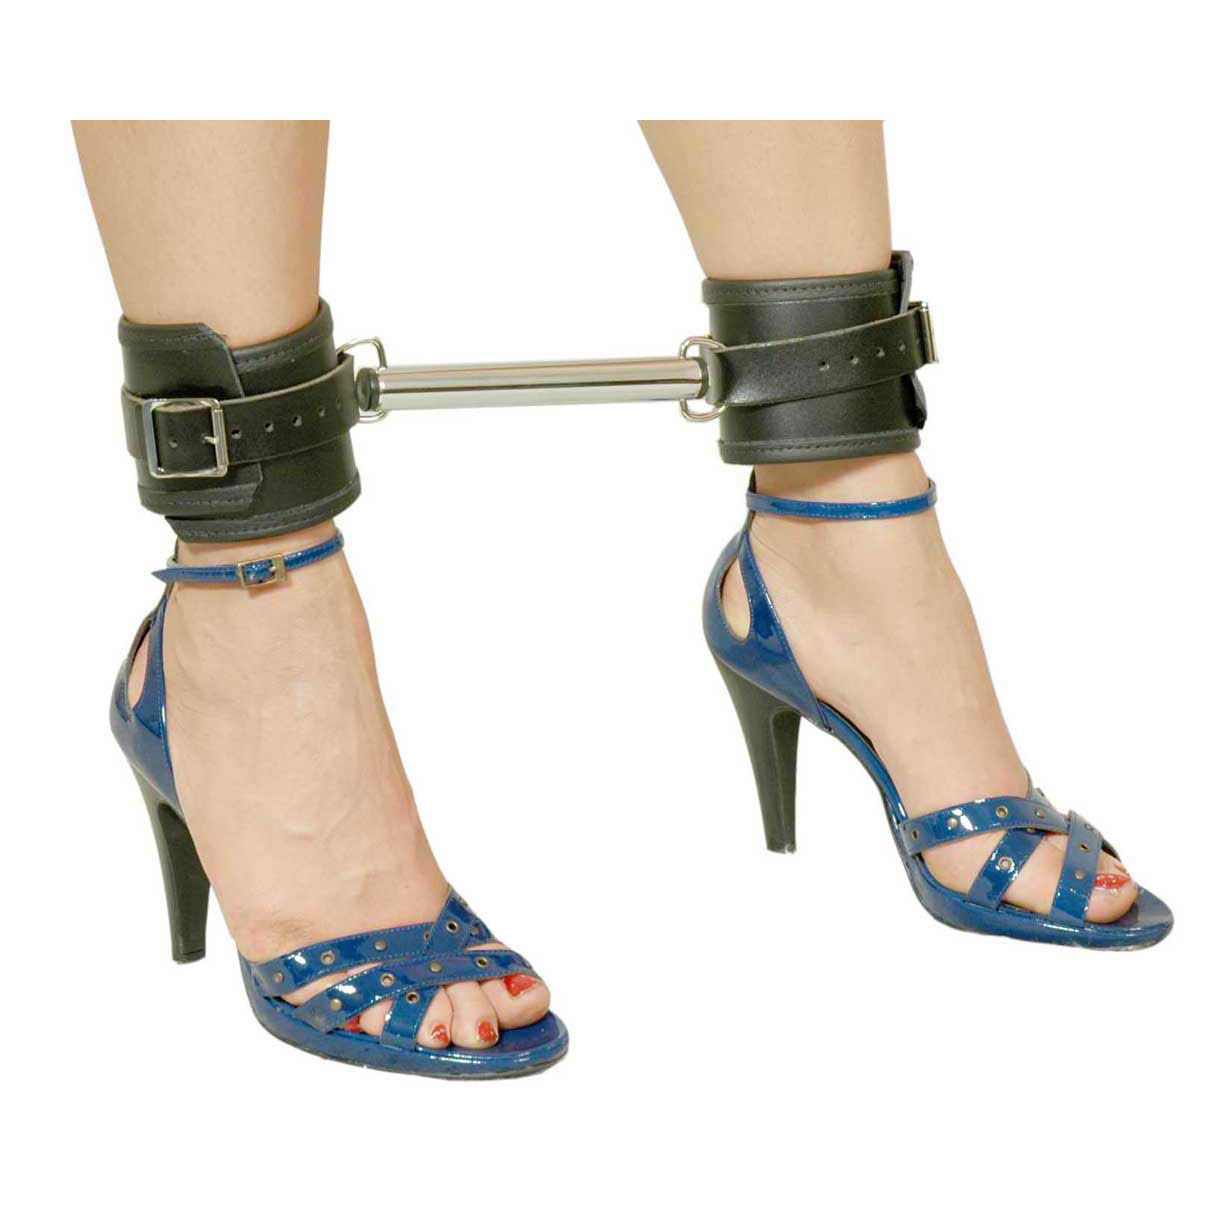 ACC 10-11 - Metal Ankle Hobble Bars